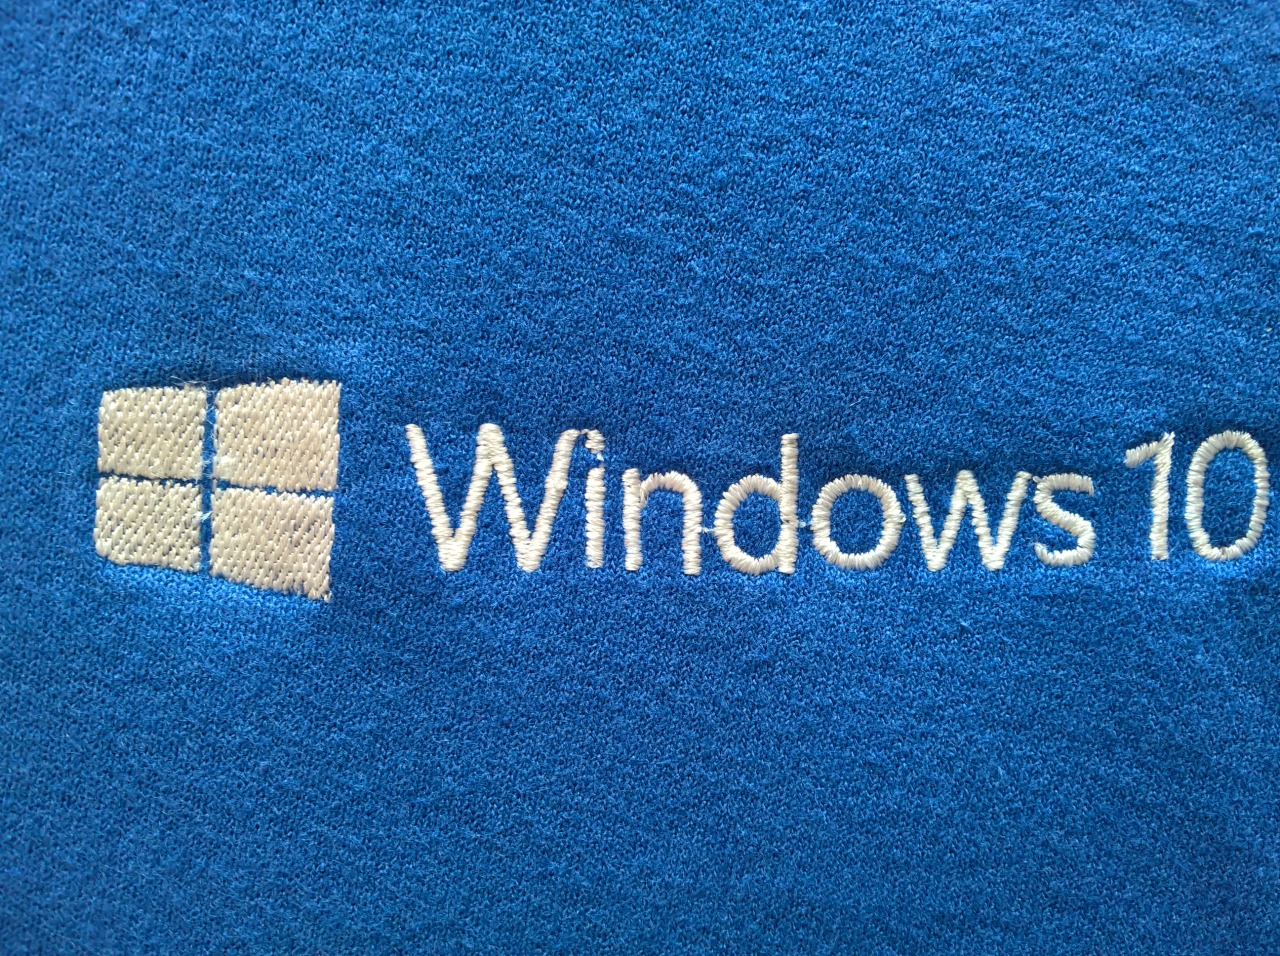 Got this cool sweat shirt after the launch of Windows 10 here in the Philippines